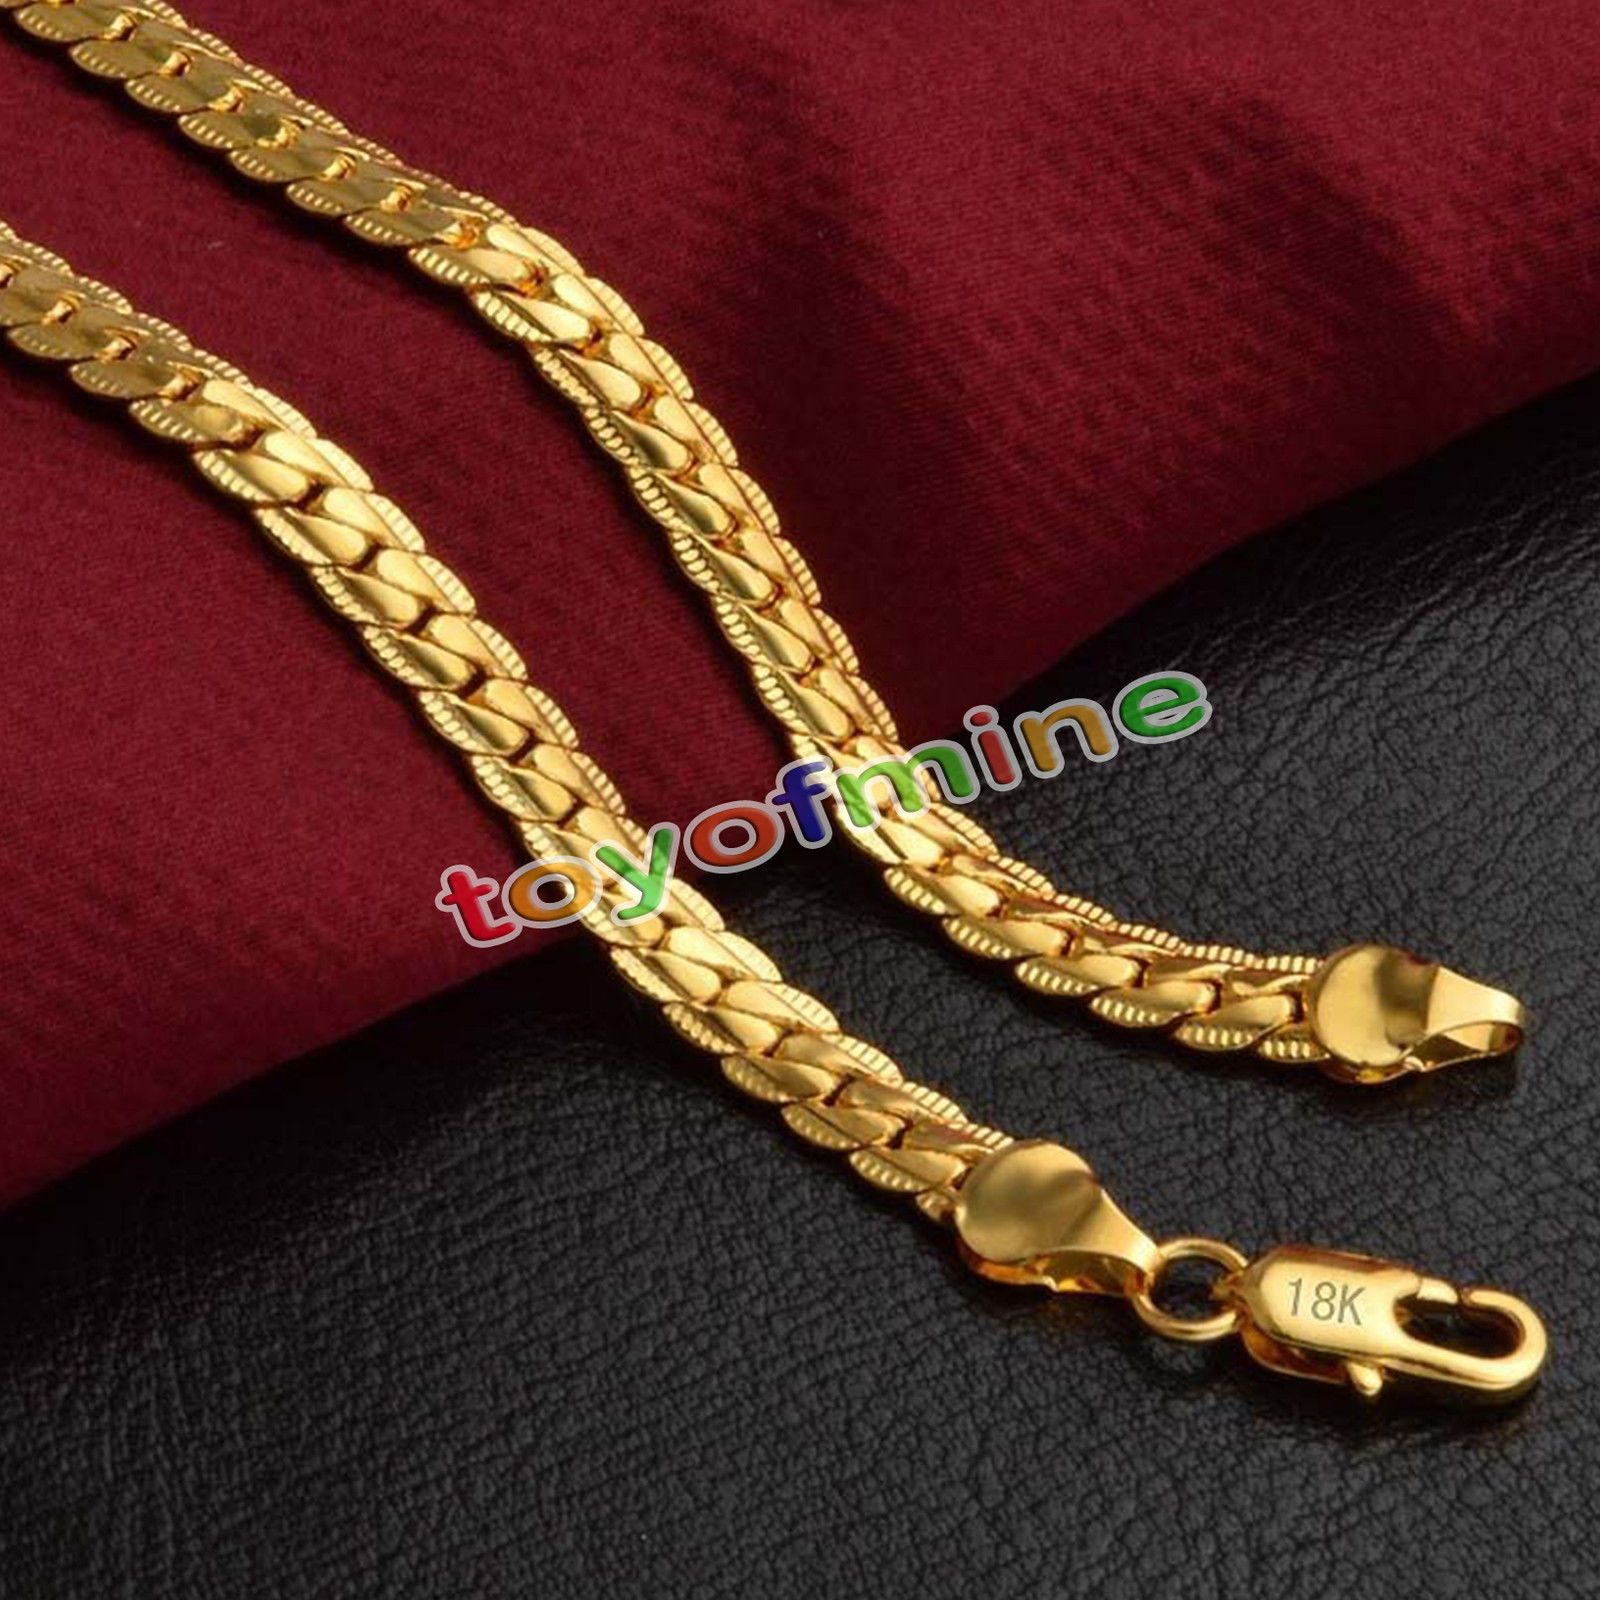 Fashion 5mm Women Men 18k Gold Plated Necklace Neck Chain Jewelry 20inch 50cm Gold Chains For Men Chains For Men Chains Jewelry